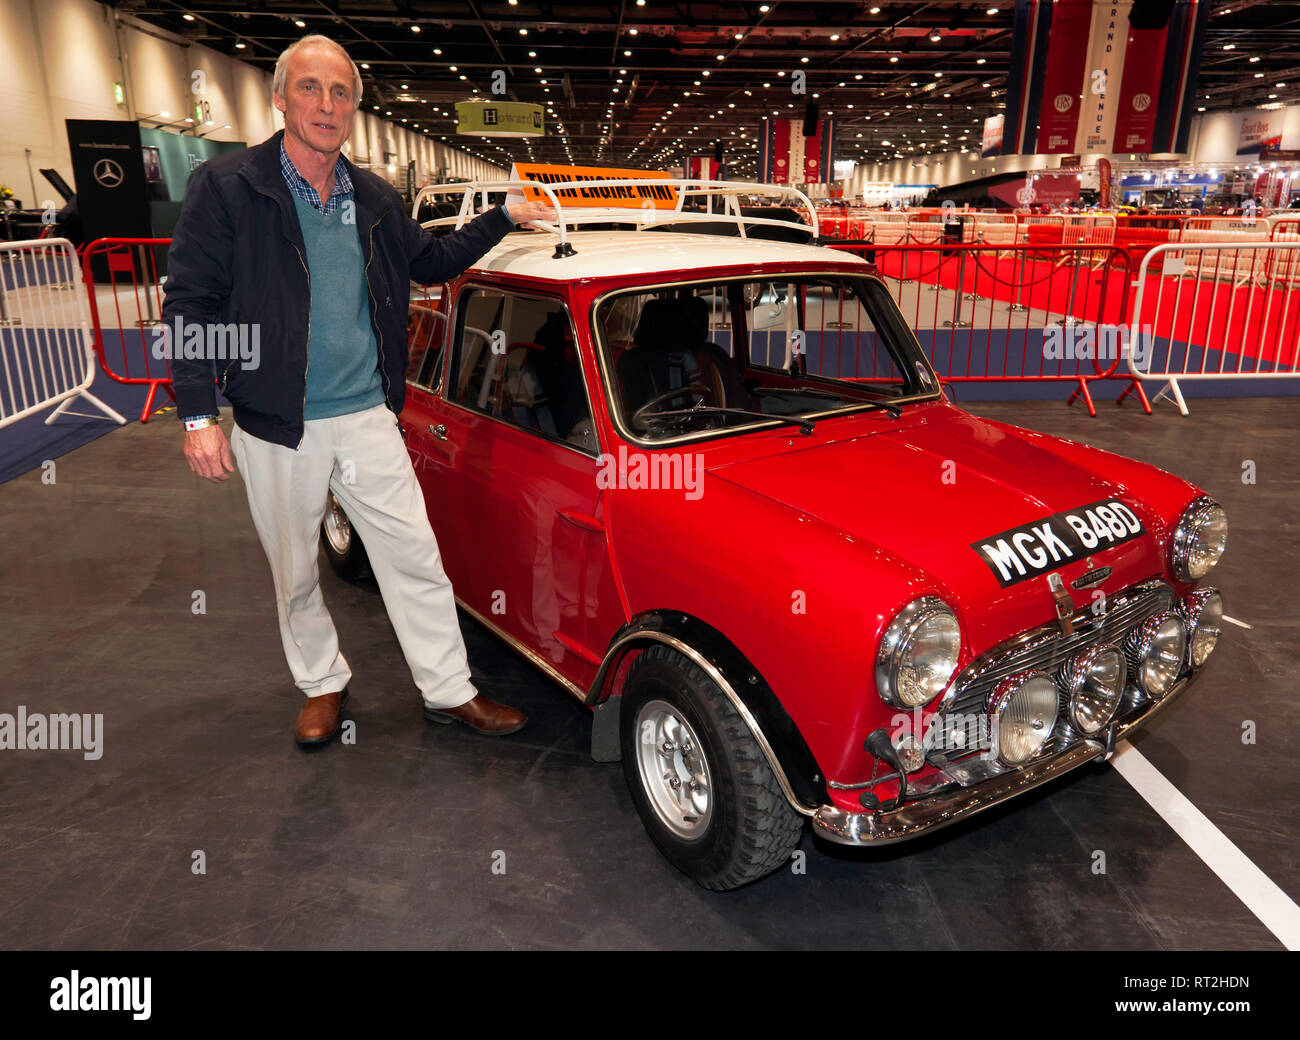 Alan Willcox posing by his twin-engine, Austin Mini Cooper S, at the 2019 London Classic Car Show. - Stock Image